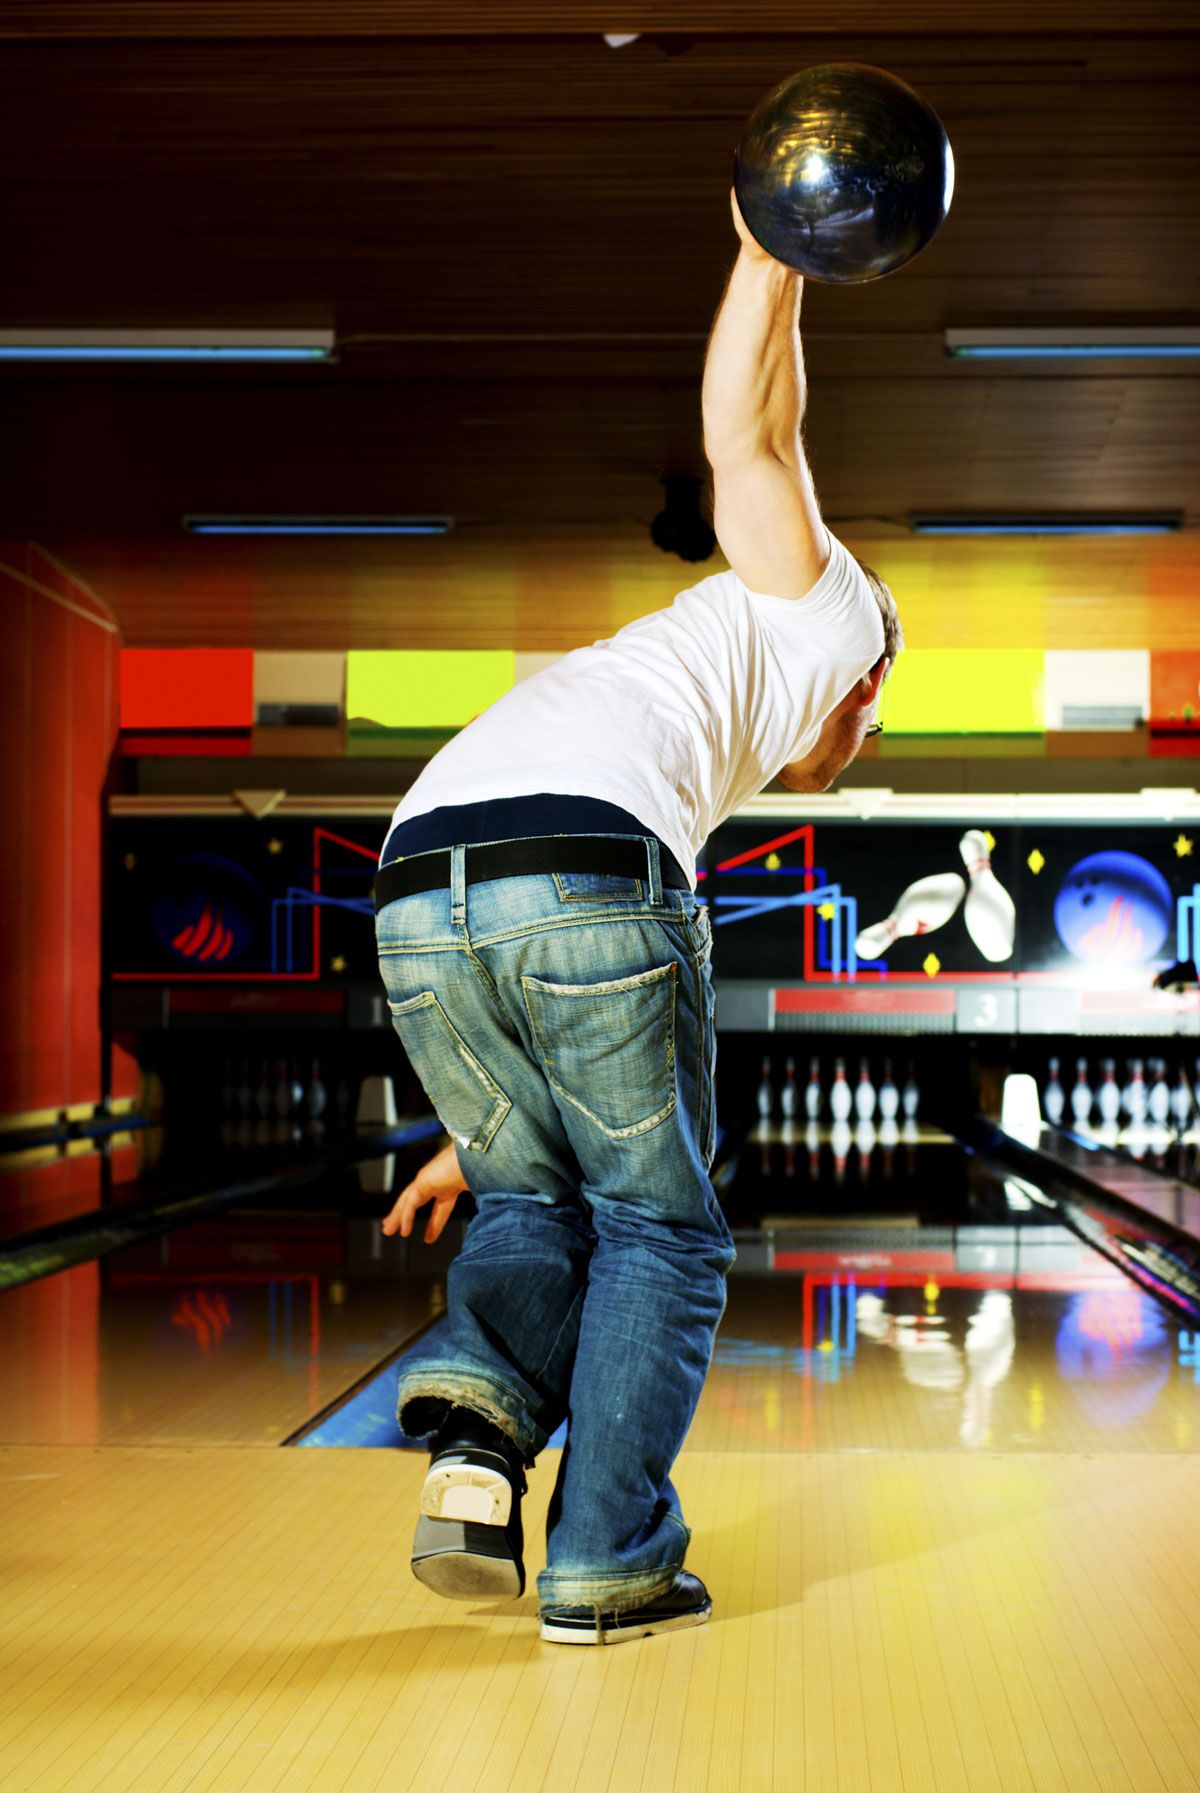 spiritsays Ideas to spare Bowling, Bowling tips, How